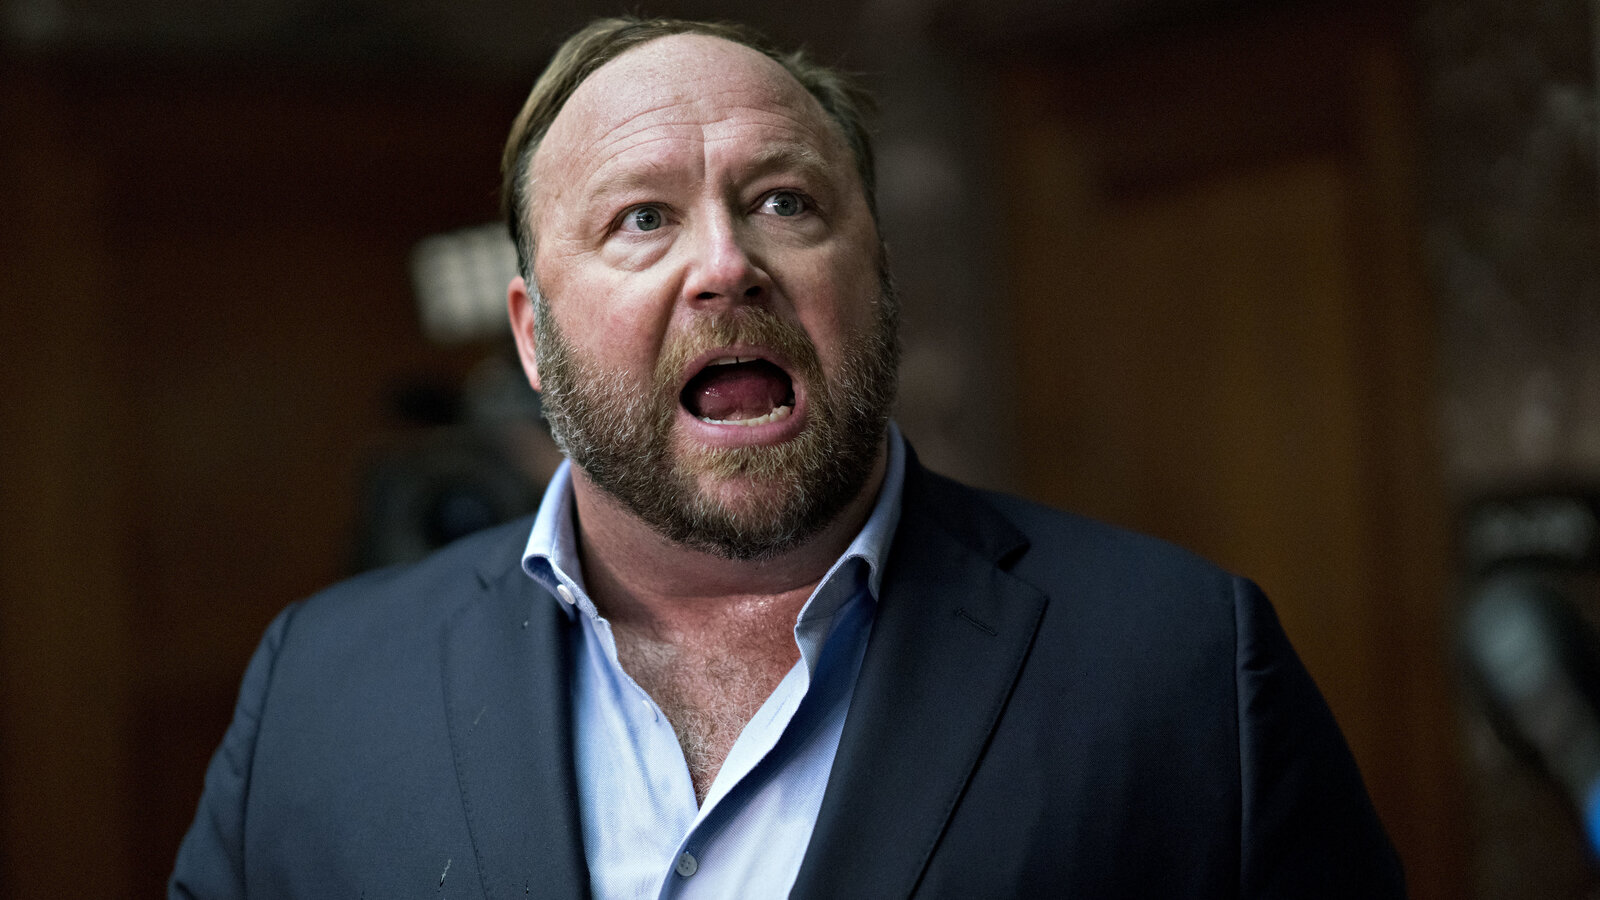 https://media.npr.org/assets/img/2018/09/05/alex-jones_wide-250cf7174f3d98e659b258d2bbbab9a9d24746fa-s1600-c85.jpg